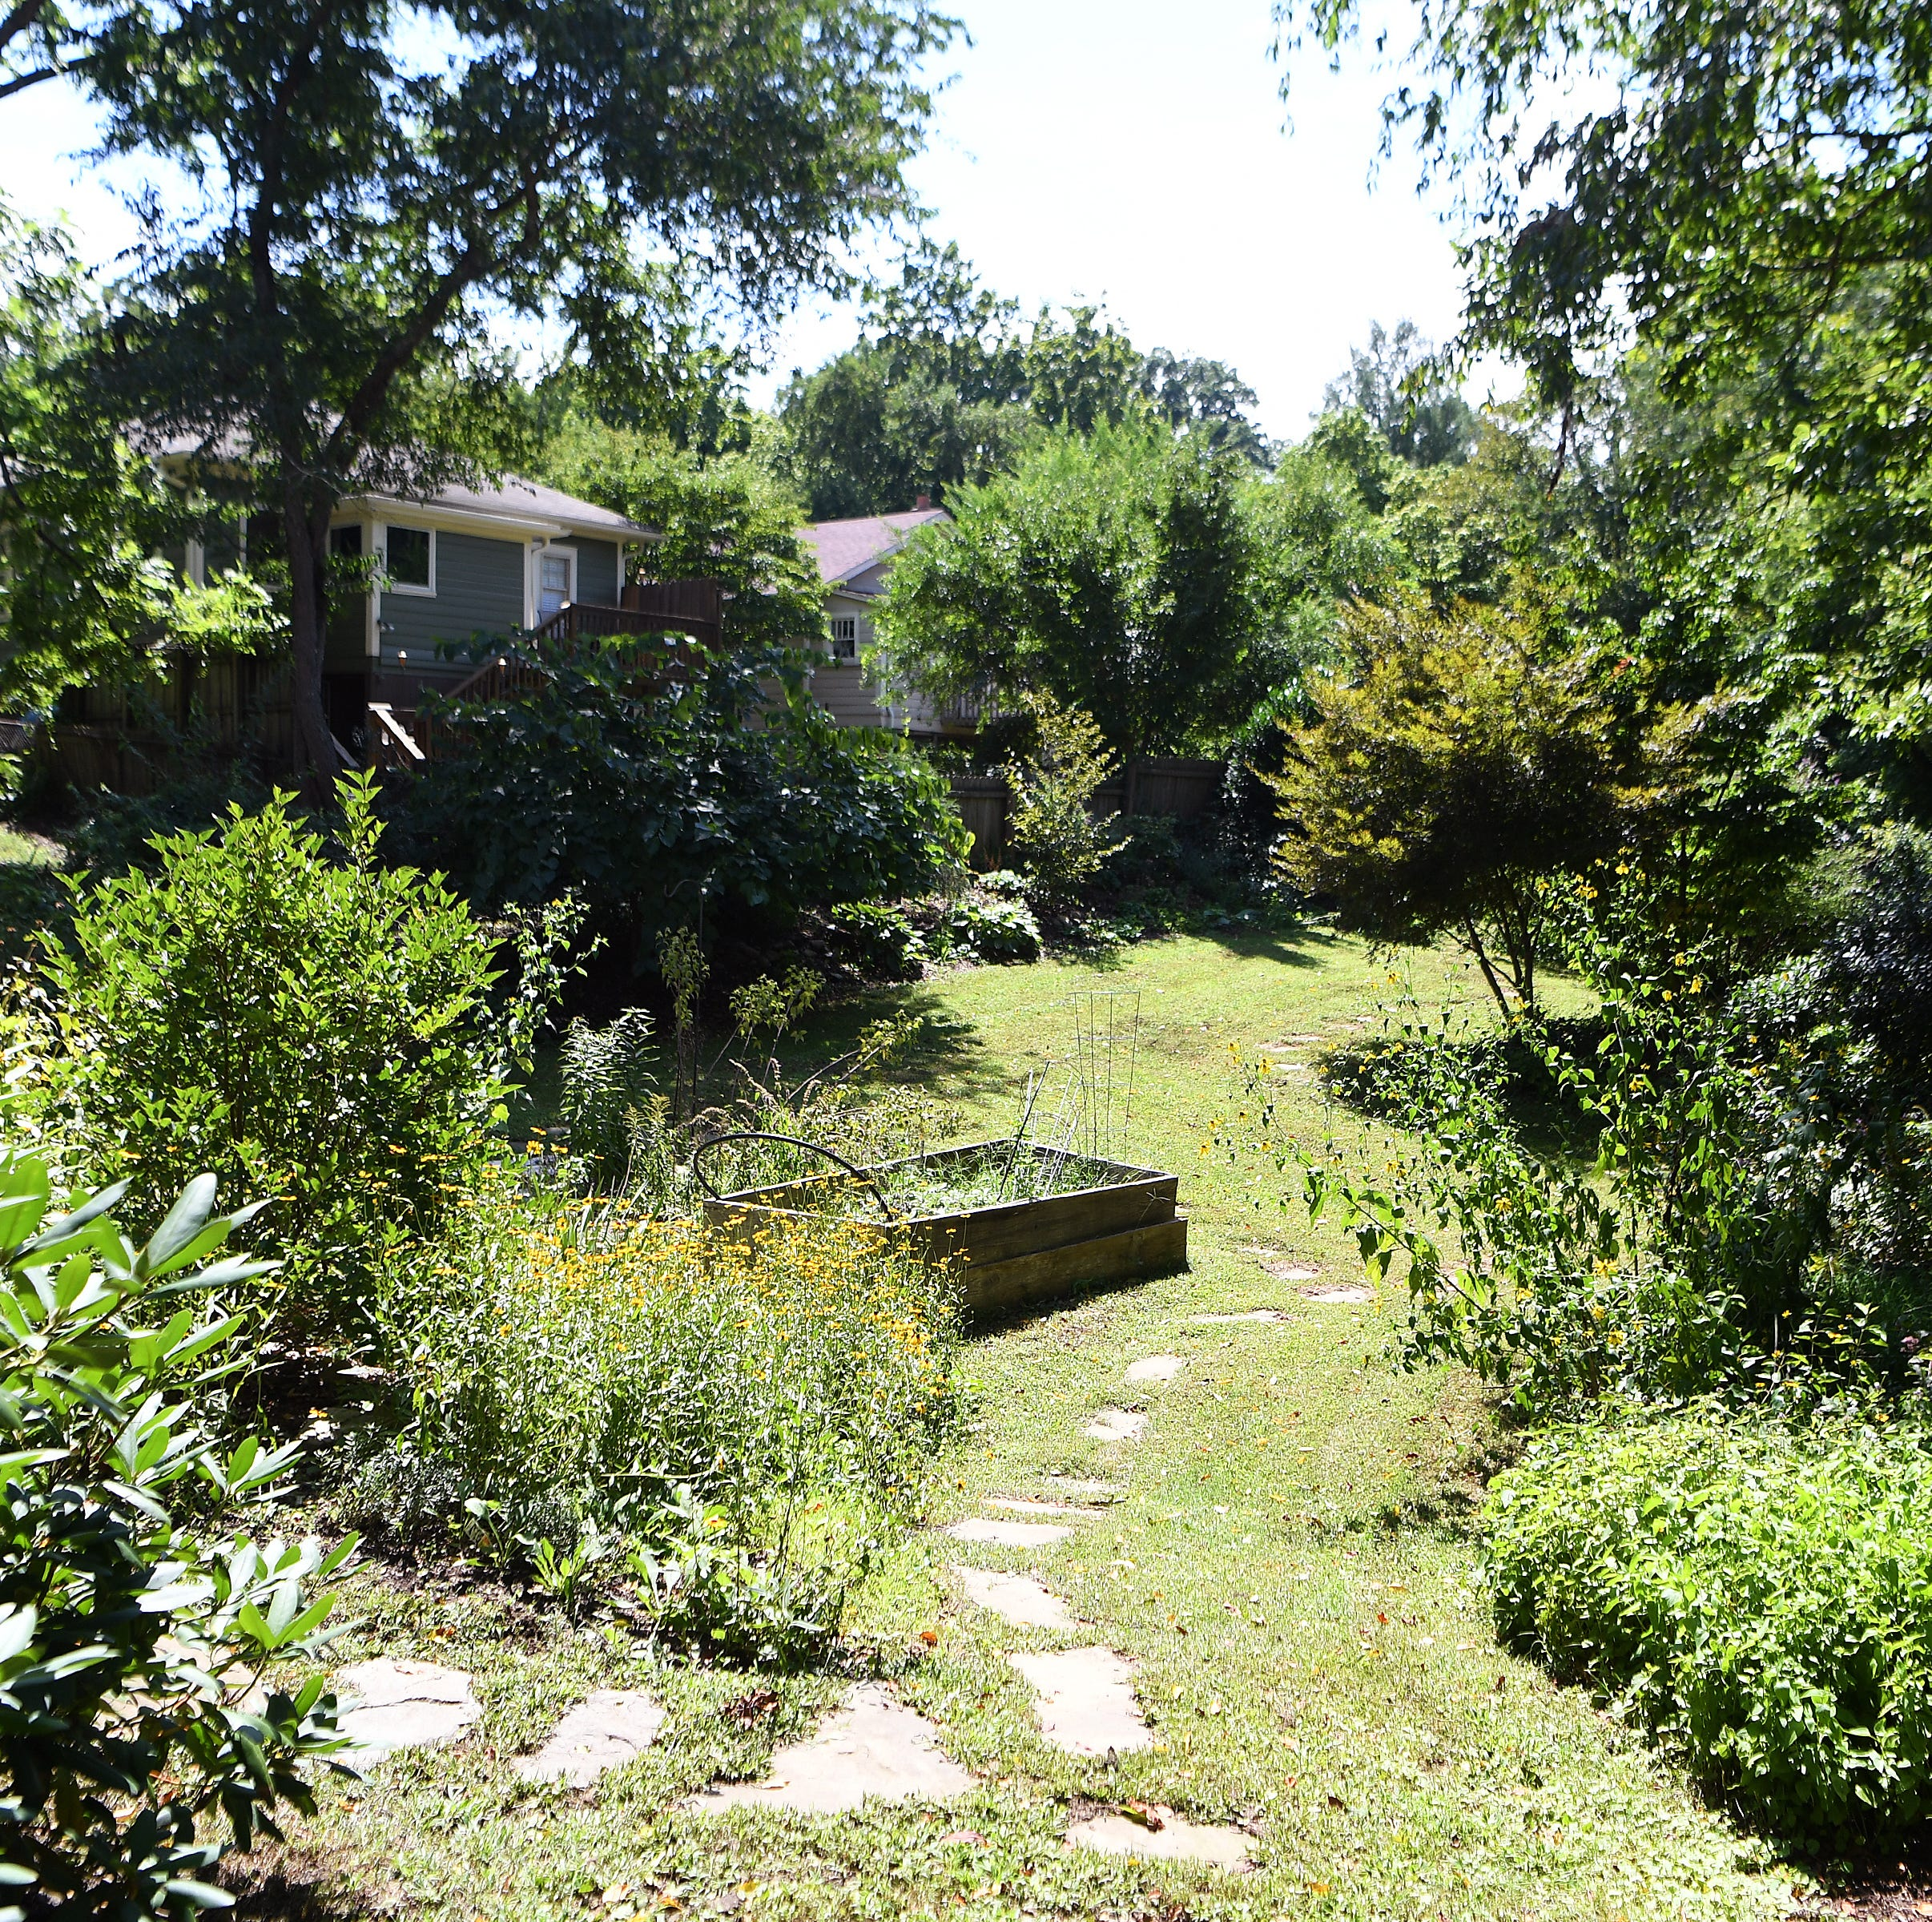 Home of the week: Graziano's West Asheville garden